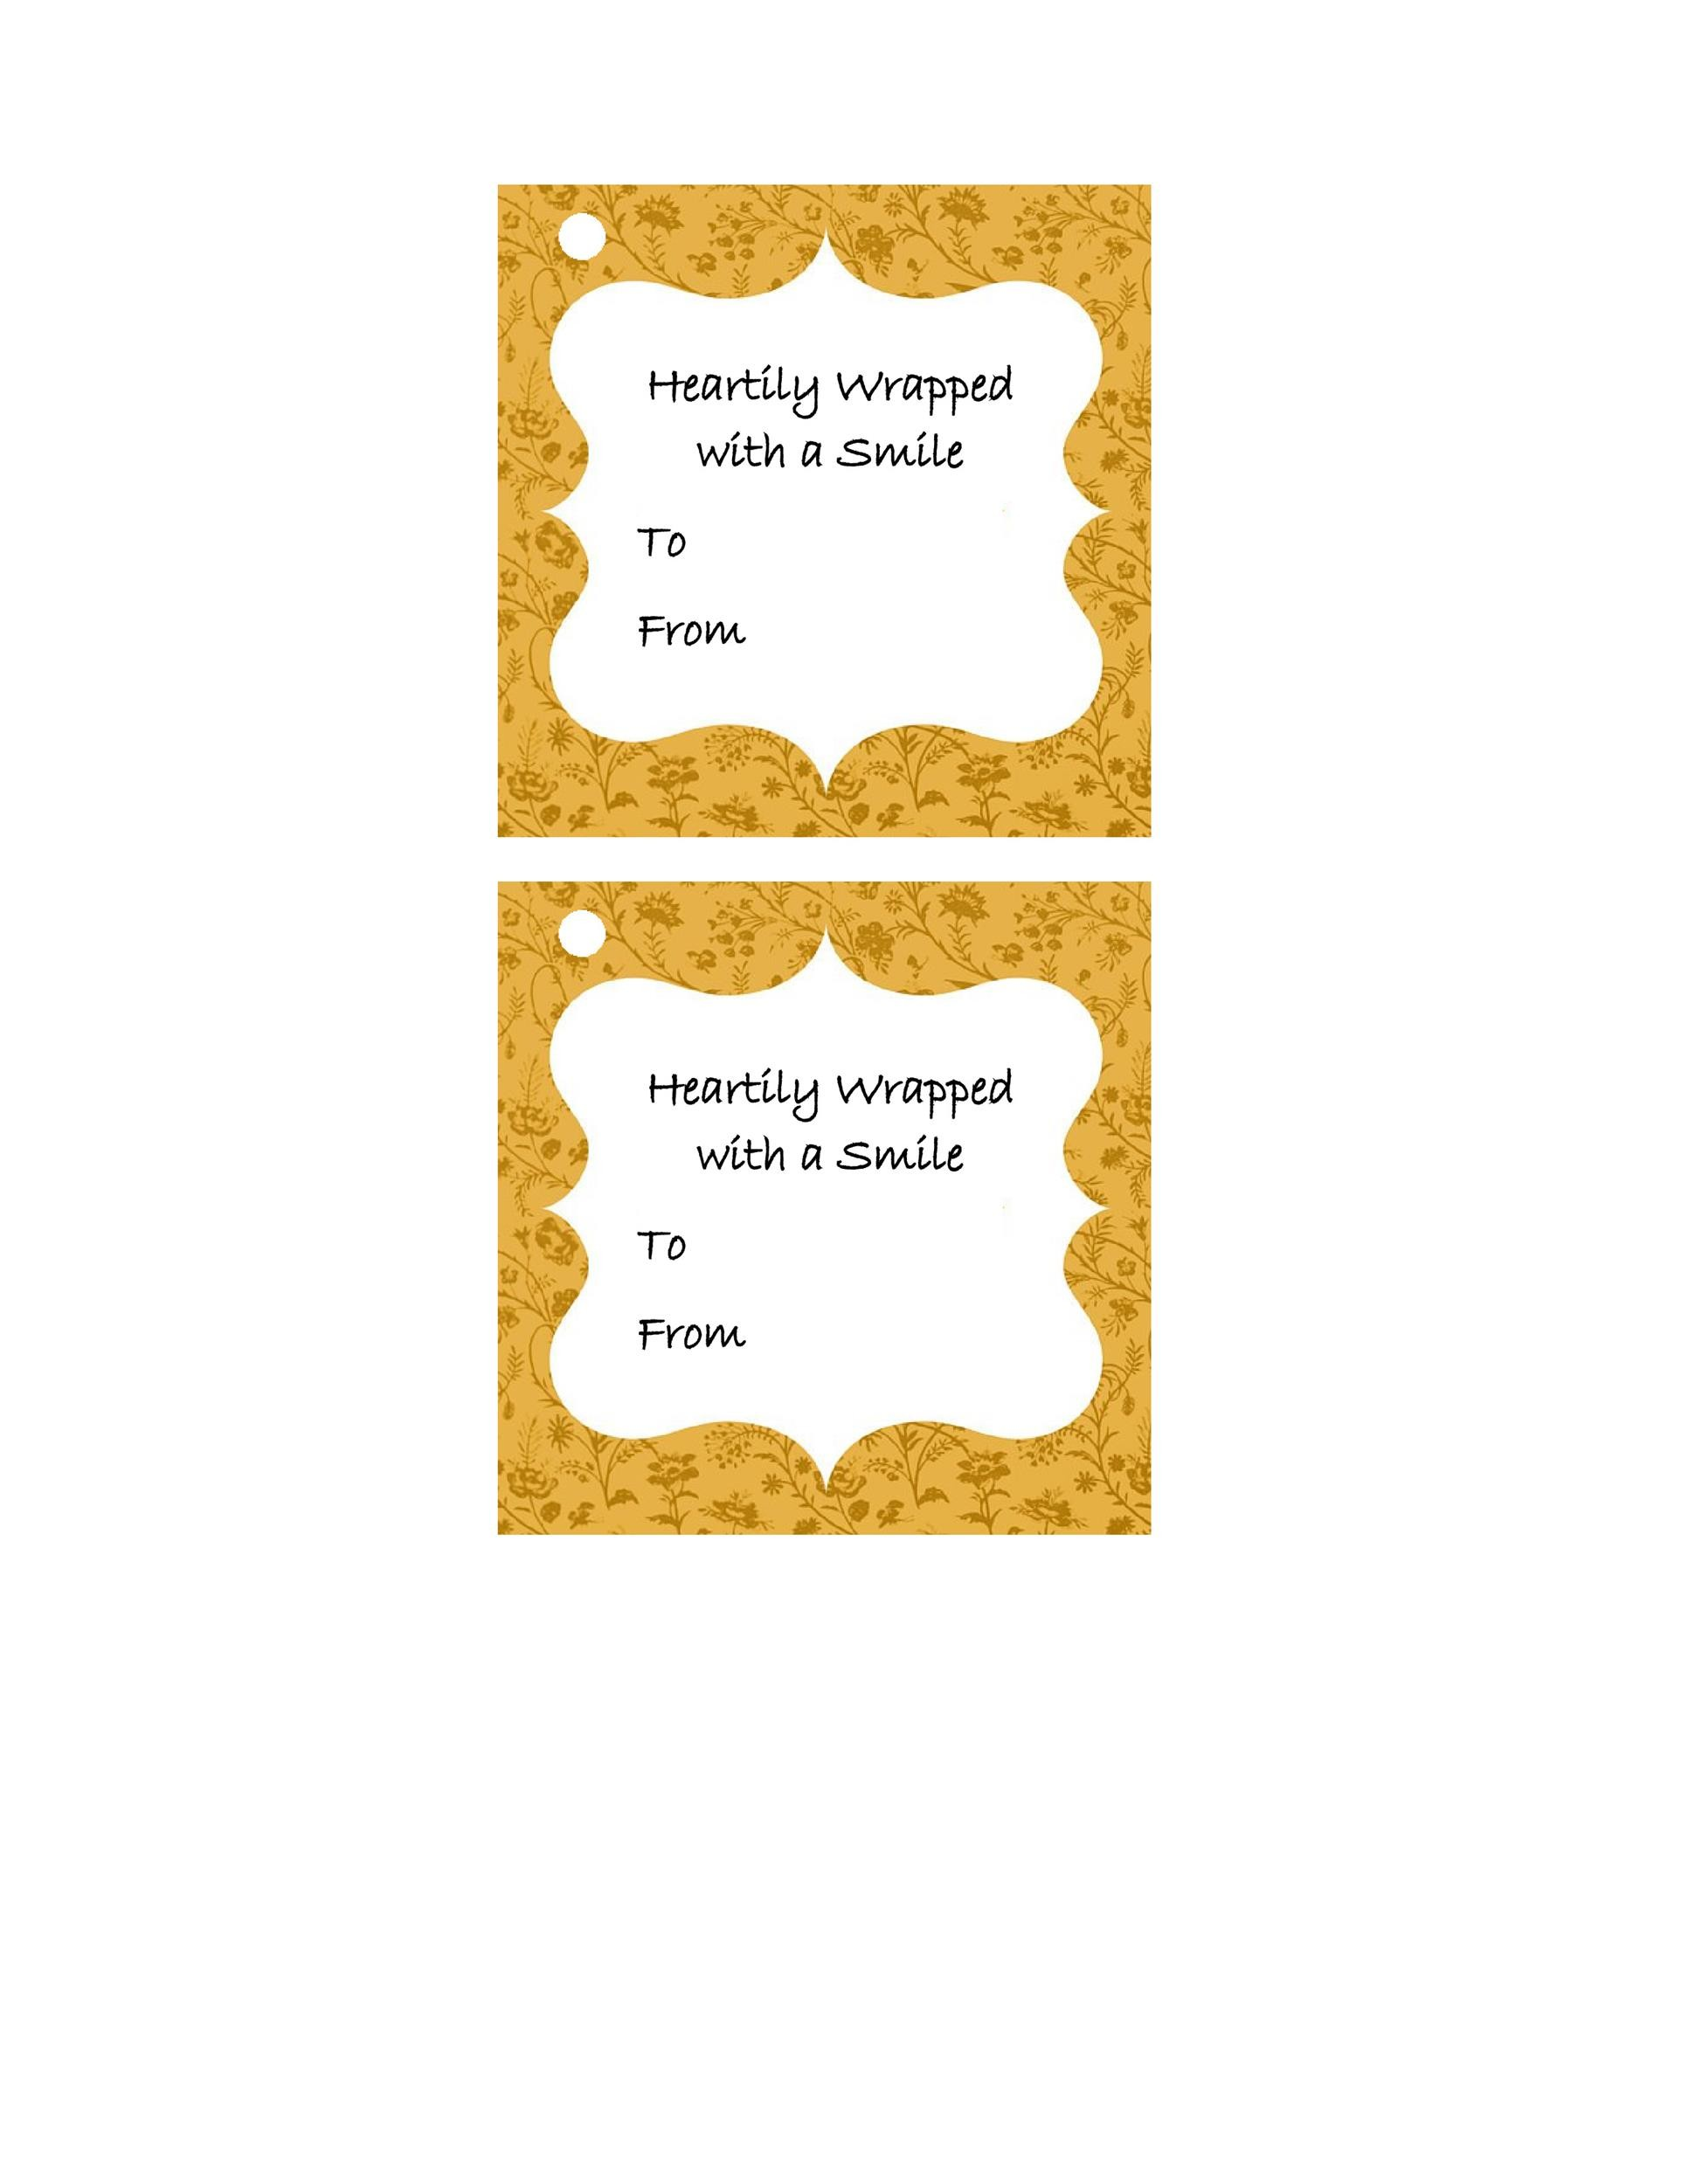 44 free printable gift tag templates  u1405 template lab